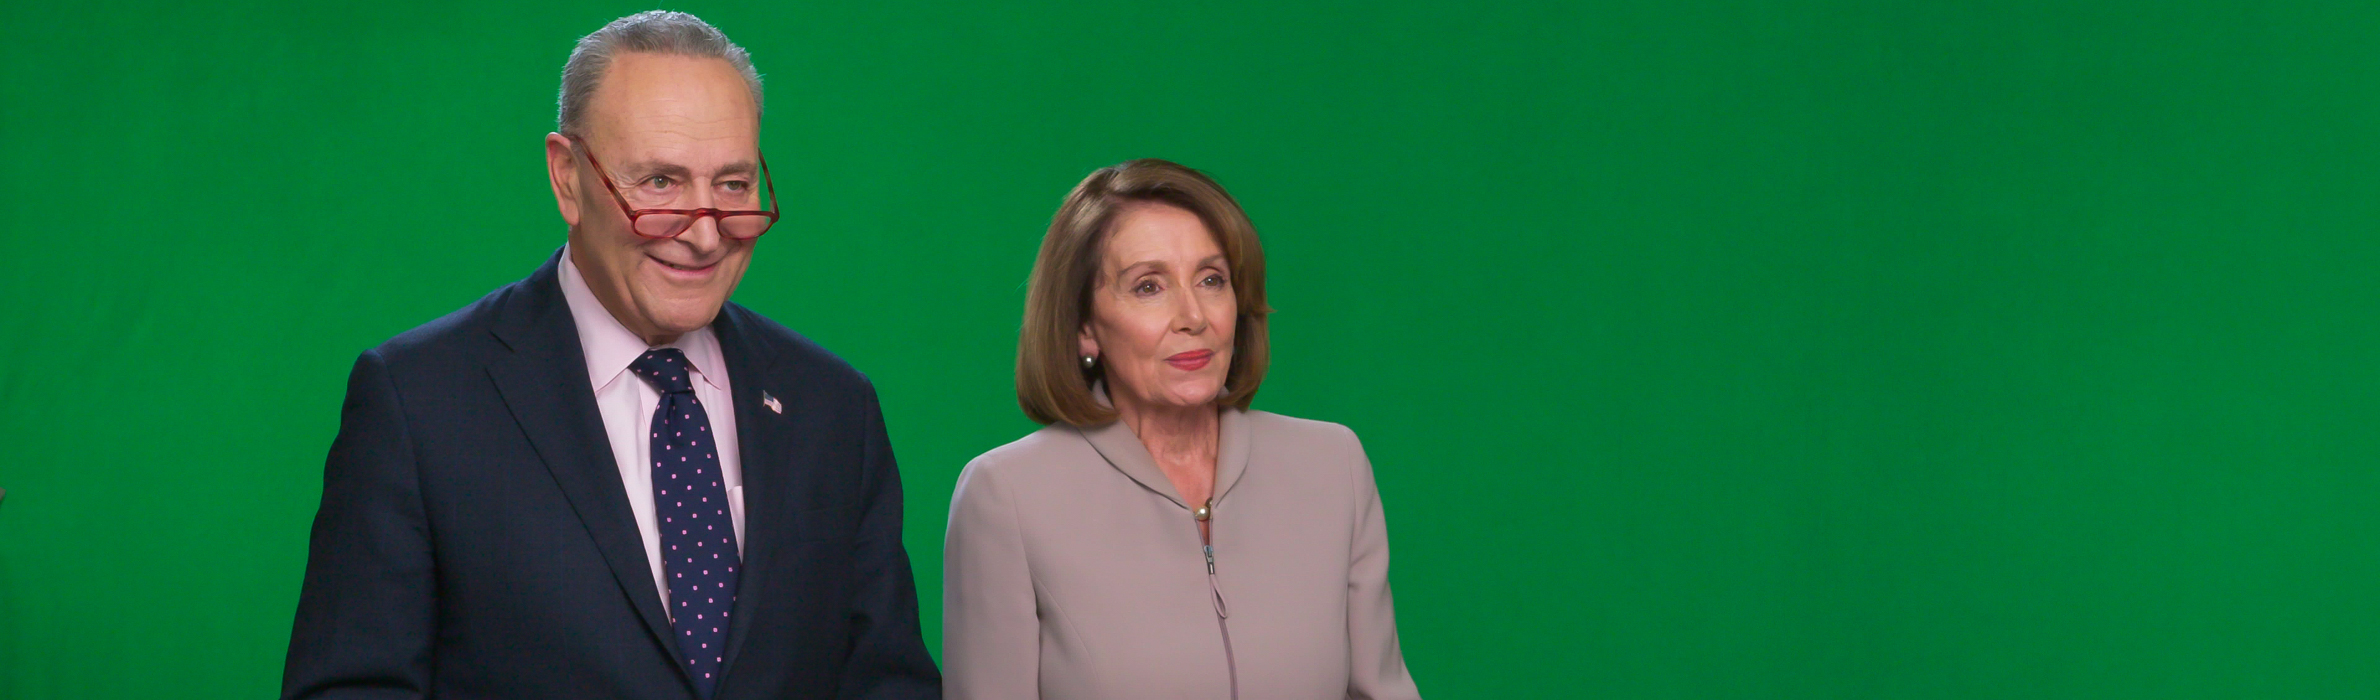 Chuck and Nancy screen grab 2400x700.jpg